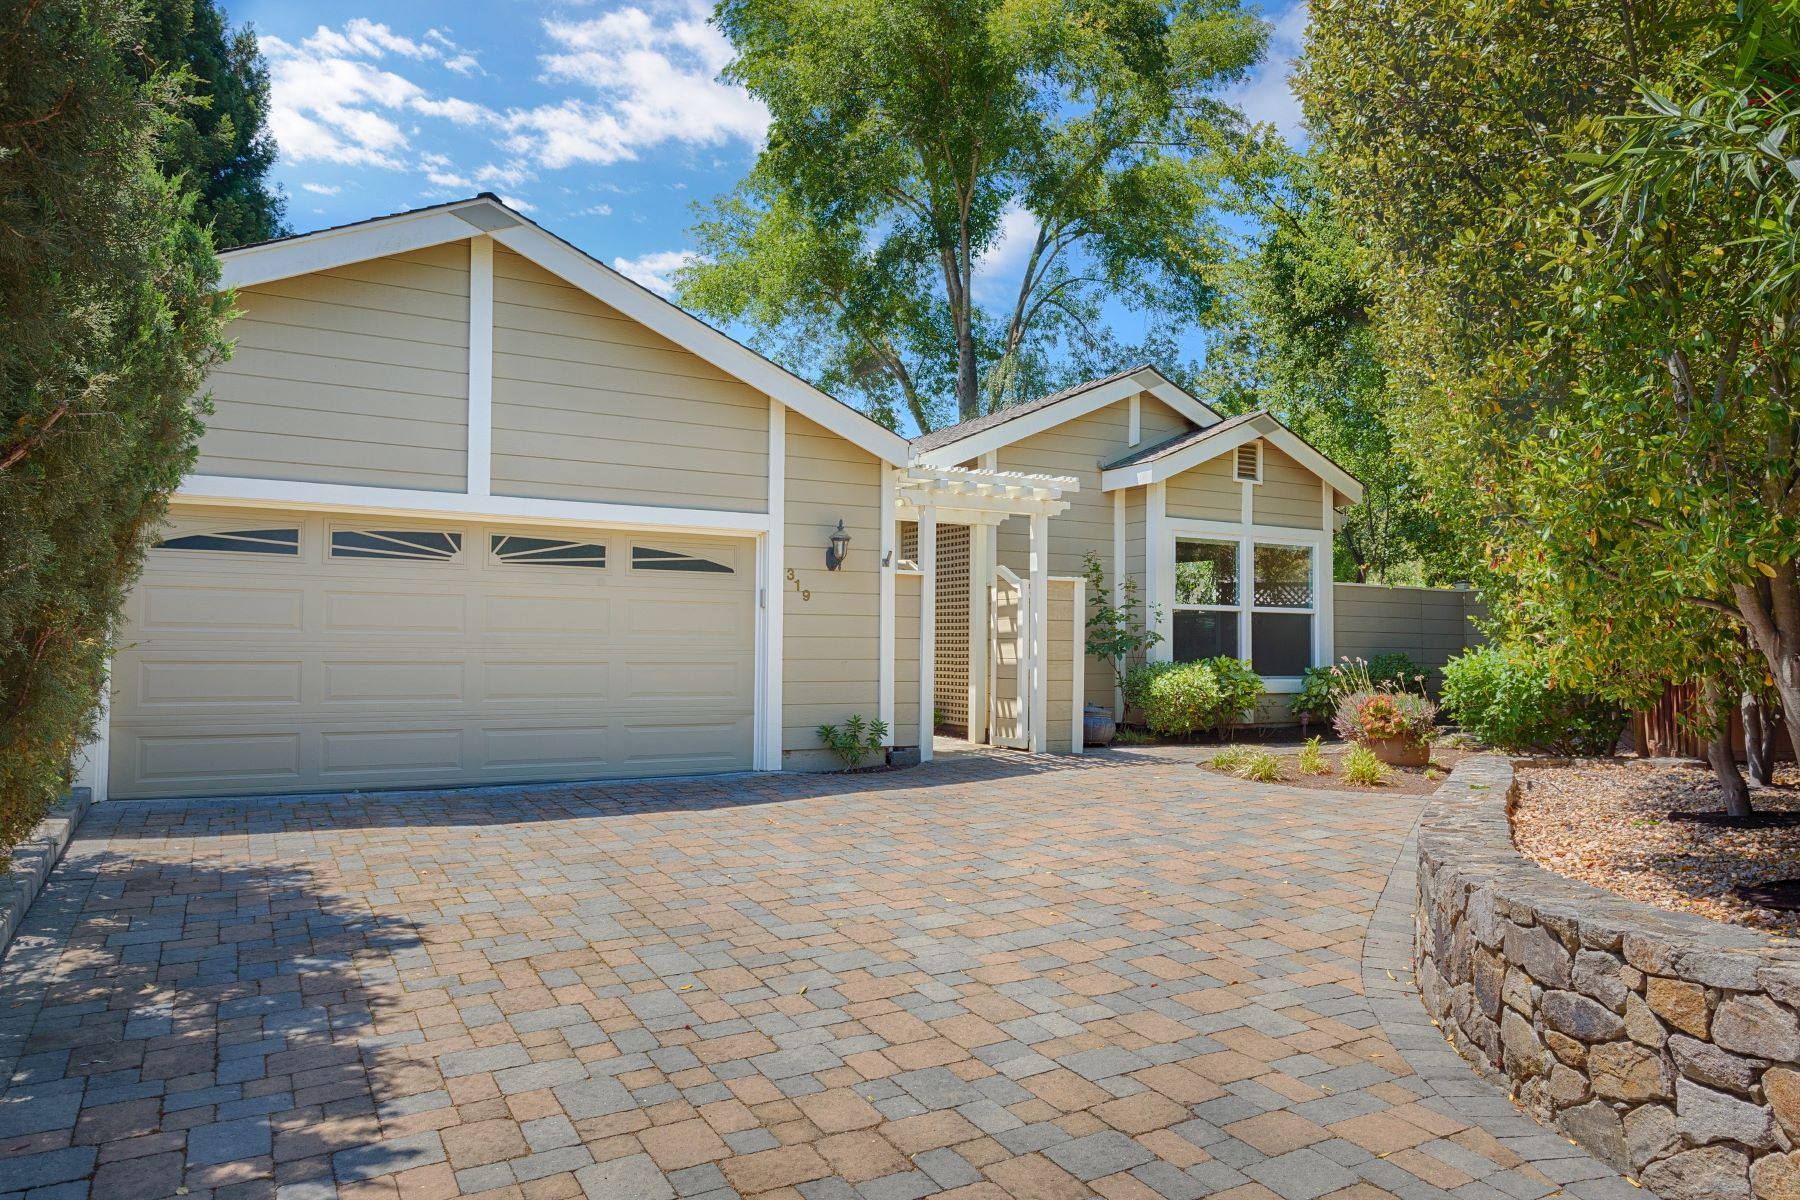 Single Family Homes for Sale at Beautifully Remodeled Single Story 319 Freitas Court Danville, California 94526 United States